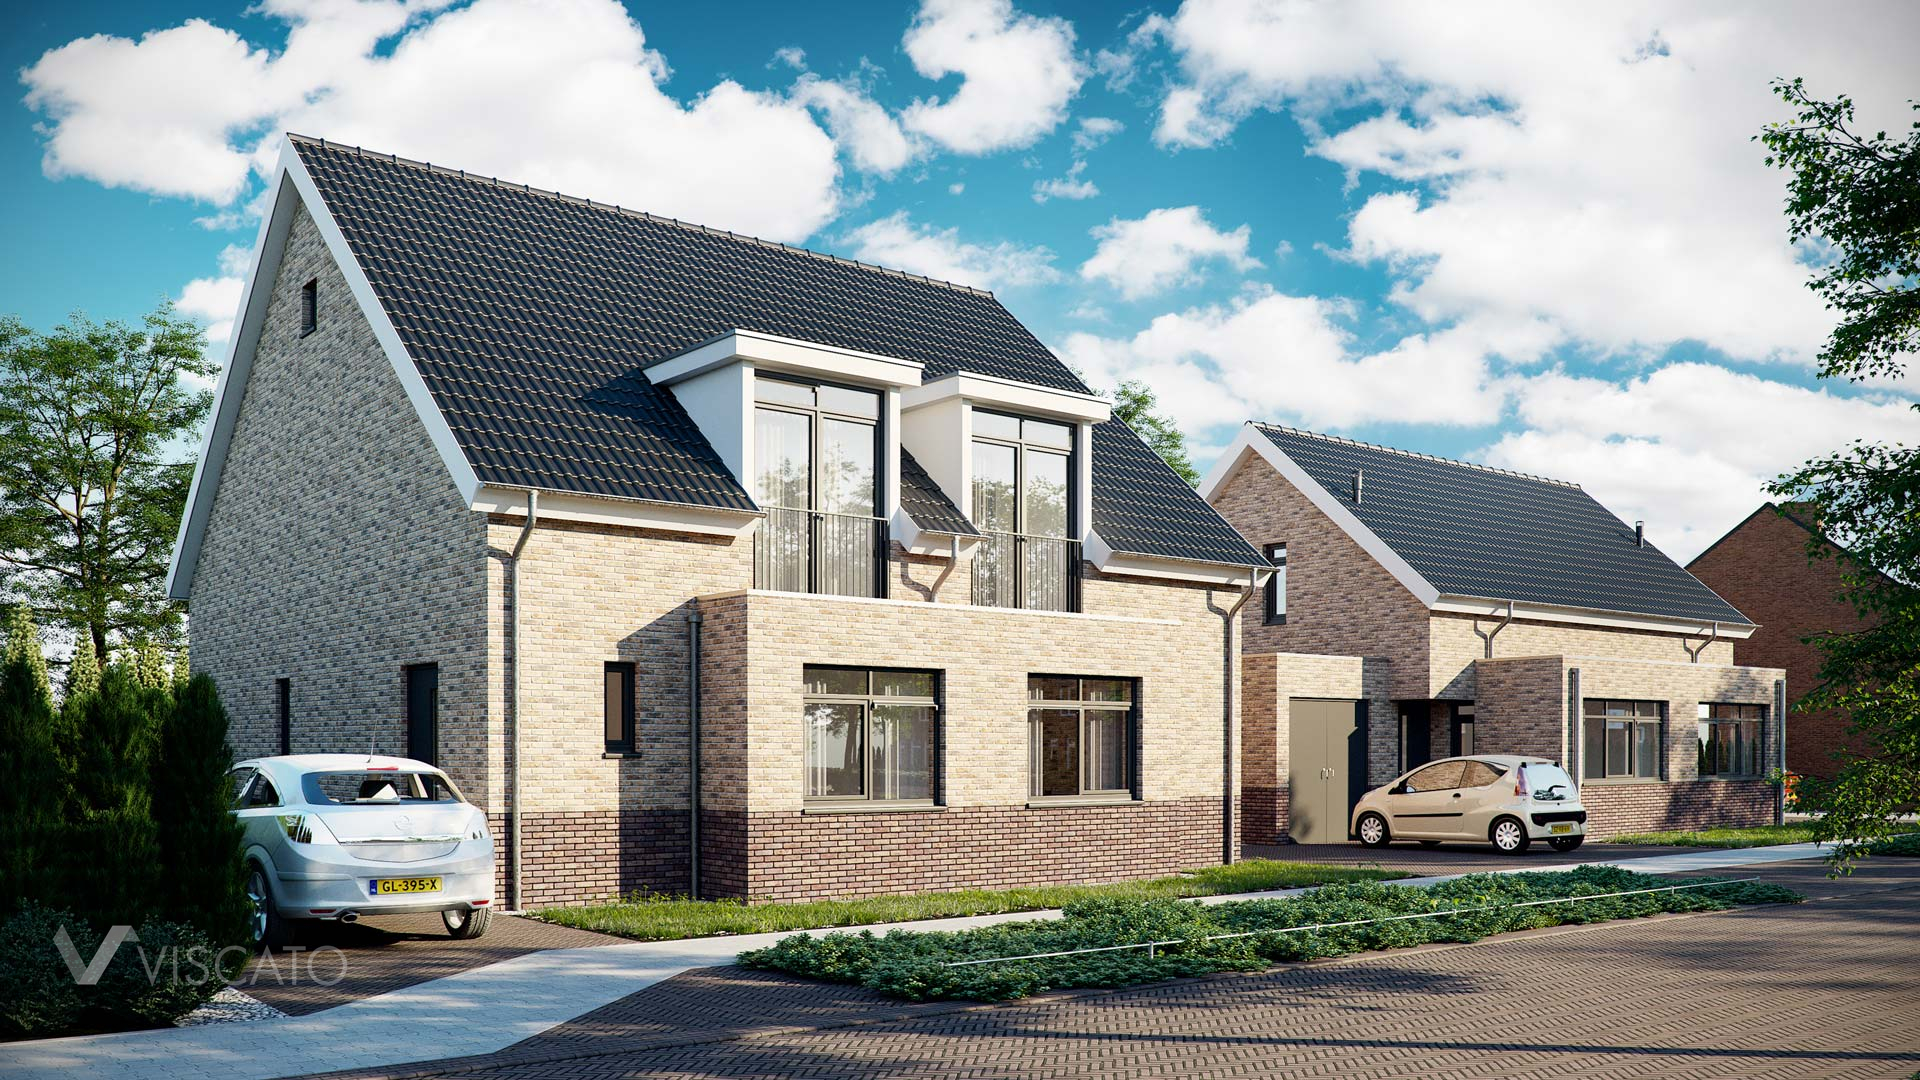 semi-detached buildings with brick facade, 3ds Max